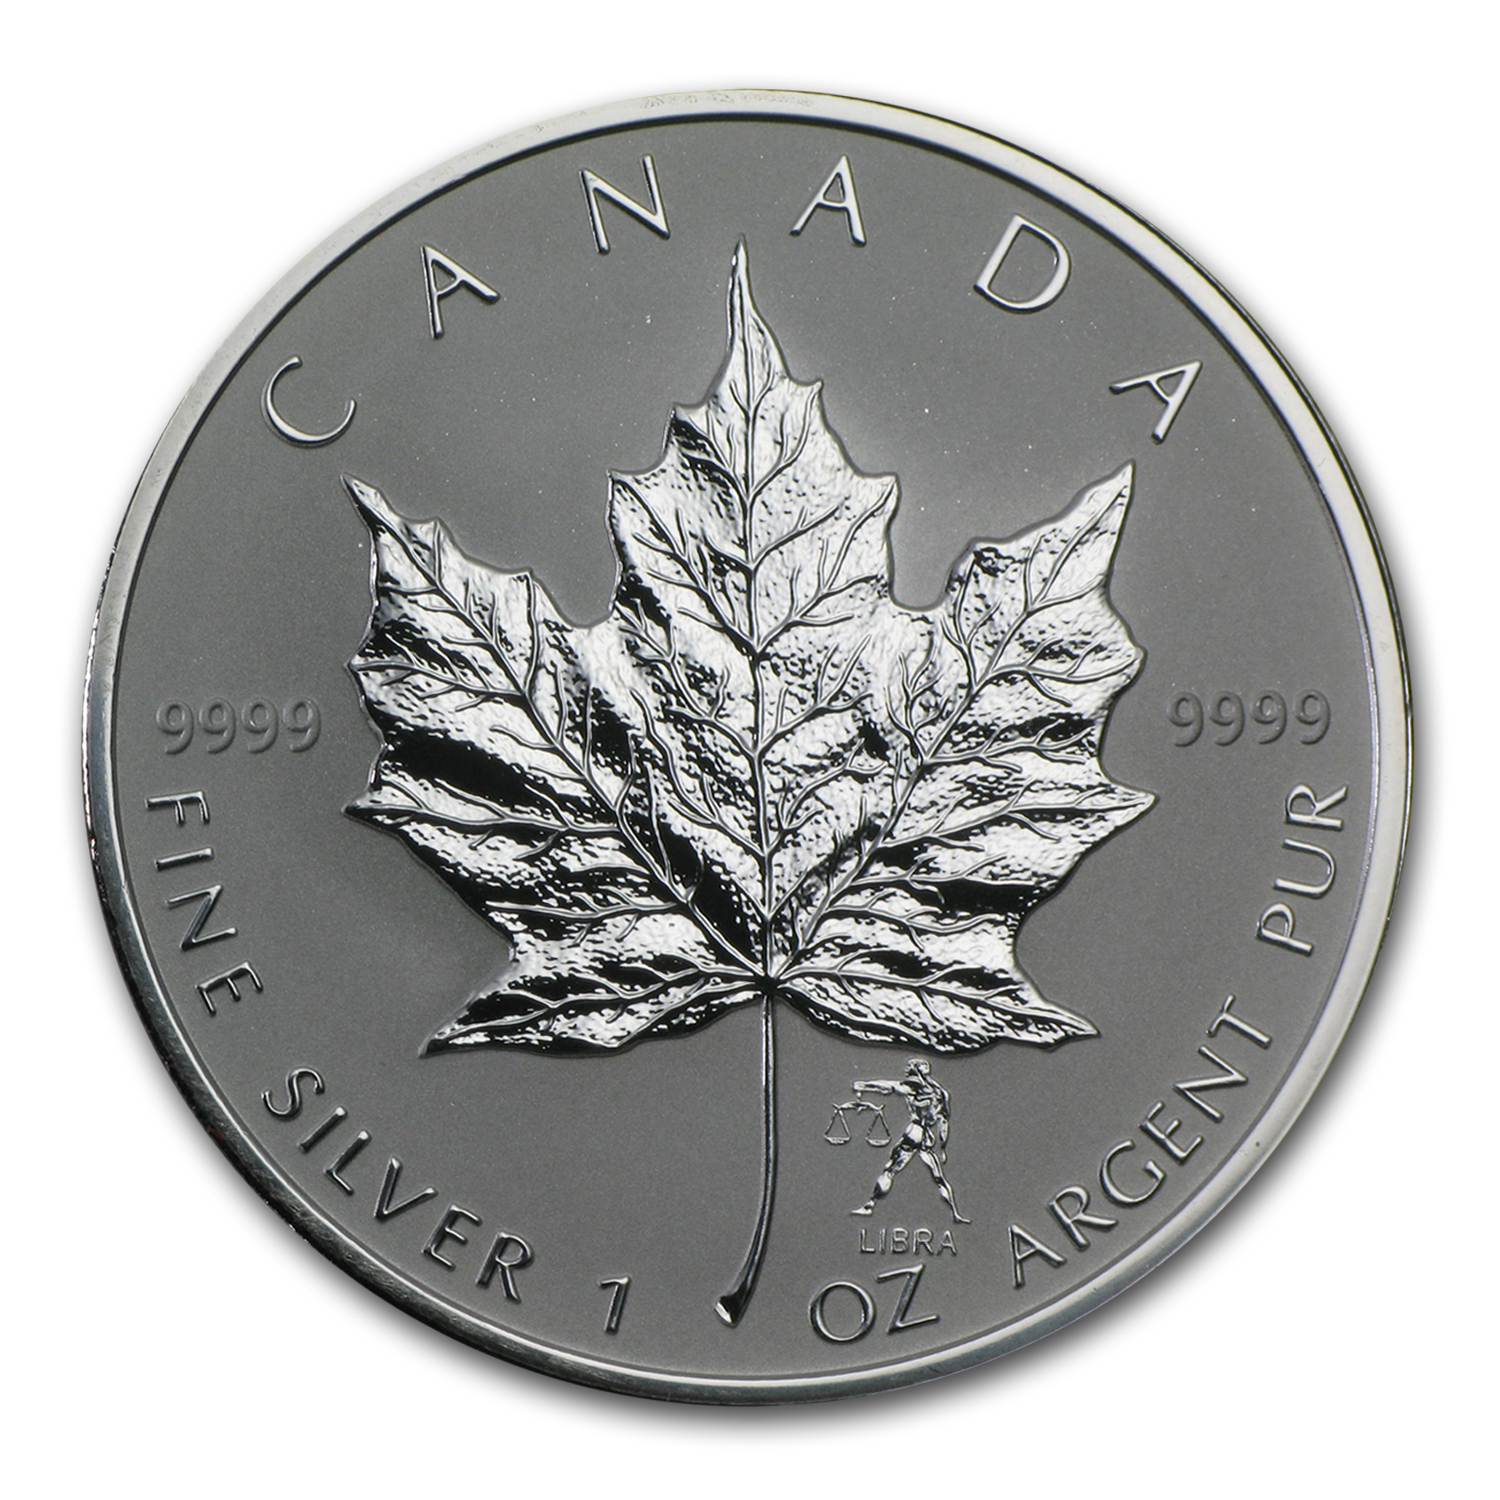 2004 1 oz Silver Canadian Maple Leaf - Libra Zodiac Privy